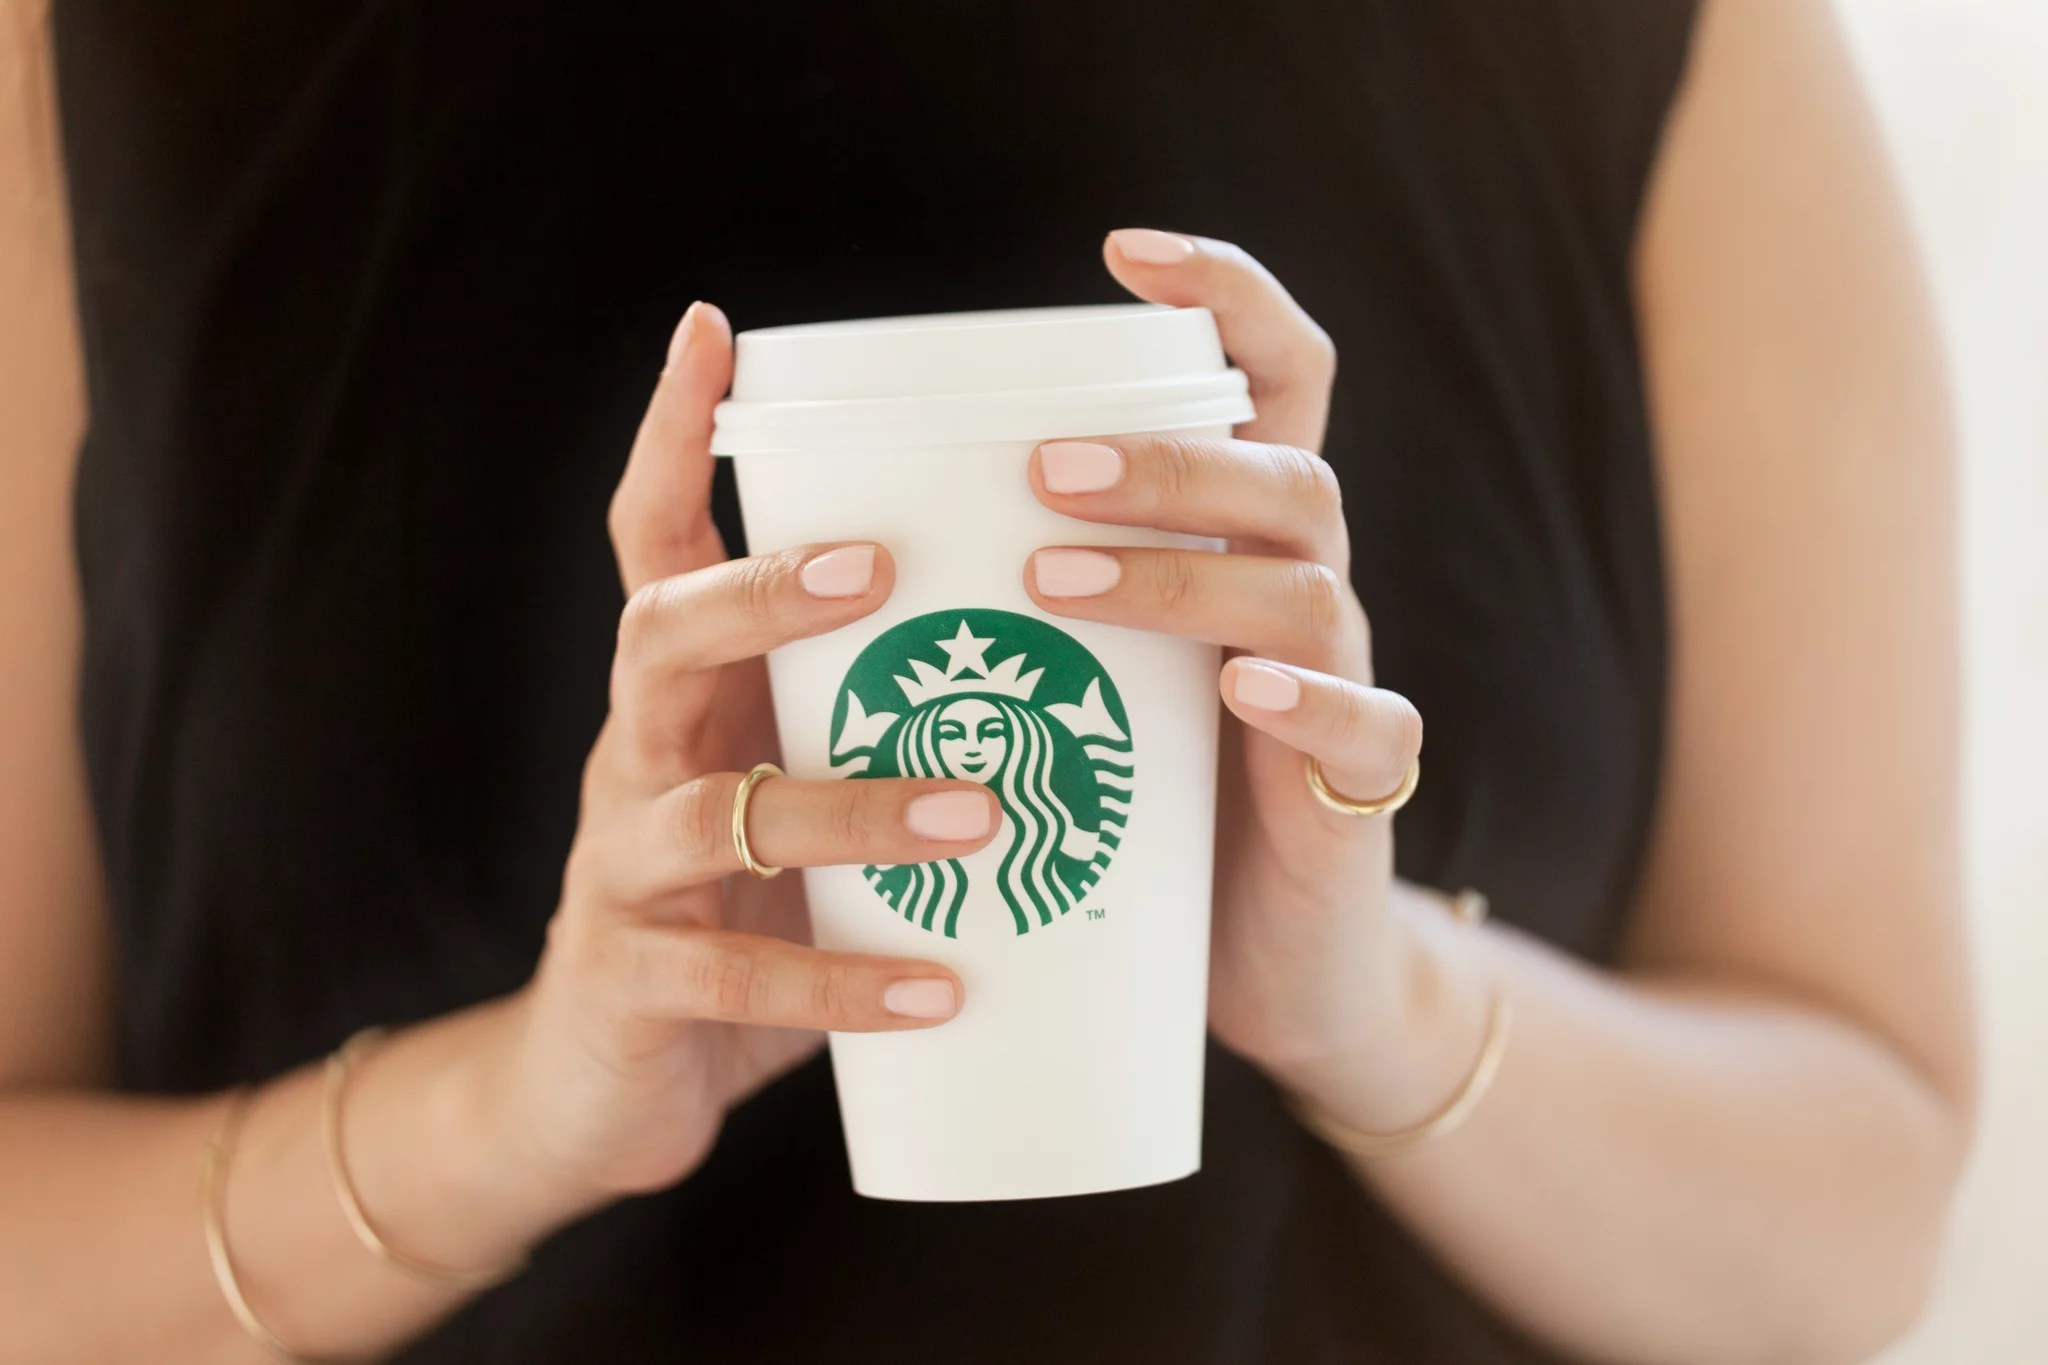 How to Save Calories at Starbucks   POPSUGAR Fitness Tempted by the allure of delicious sounding drinks like Caramelized Honey  Latte  it s easy to forget what actually goes into those Starbucks  concoctions